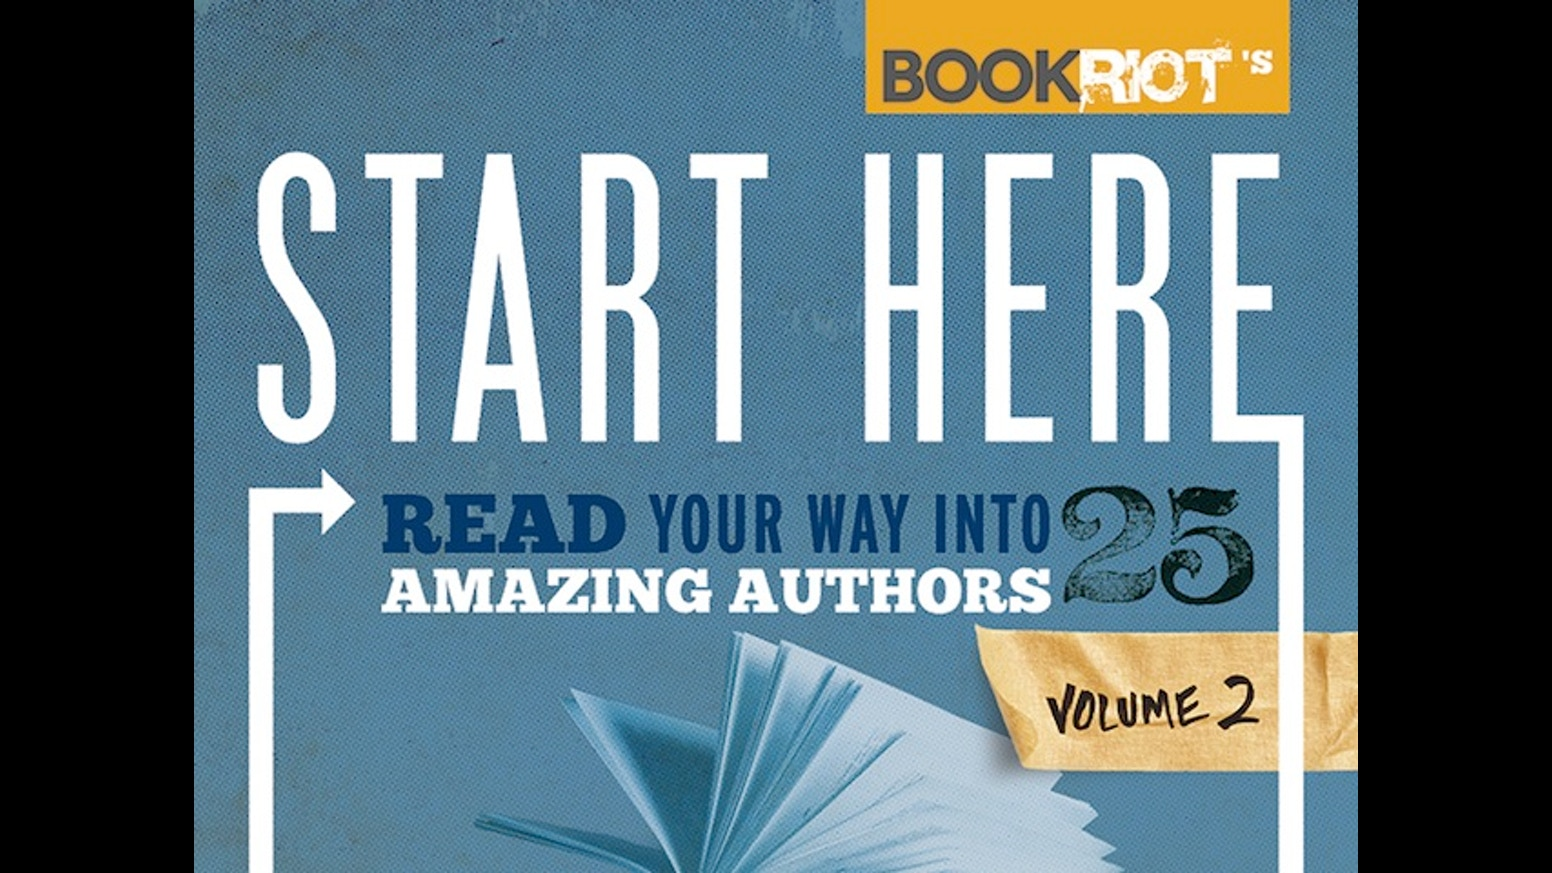 Start Here: Read Your Way Into 25 Amazing Authors, Vol 2